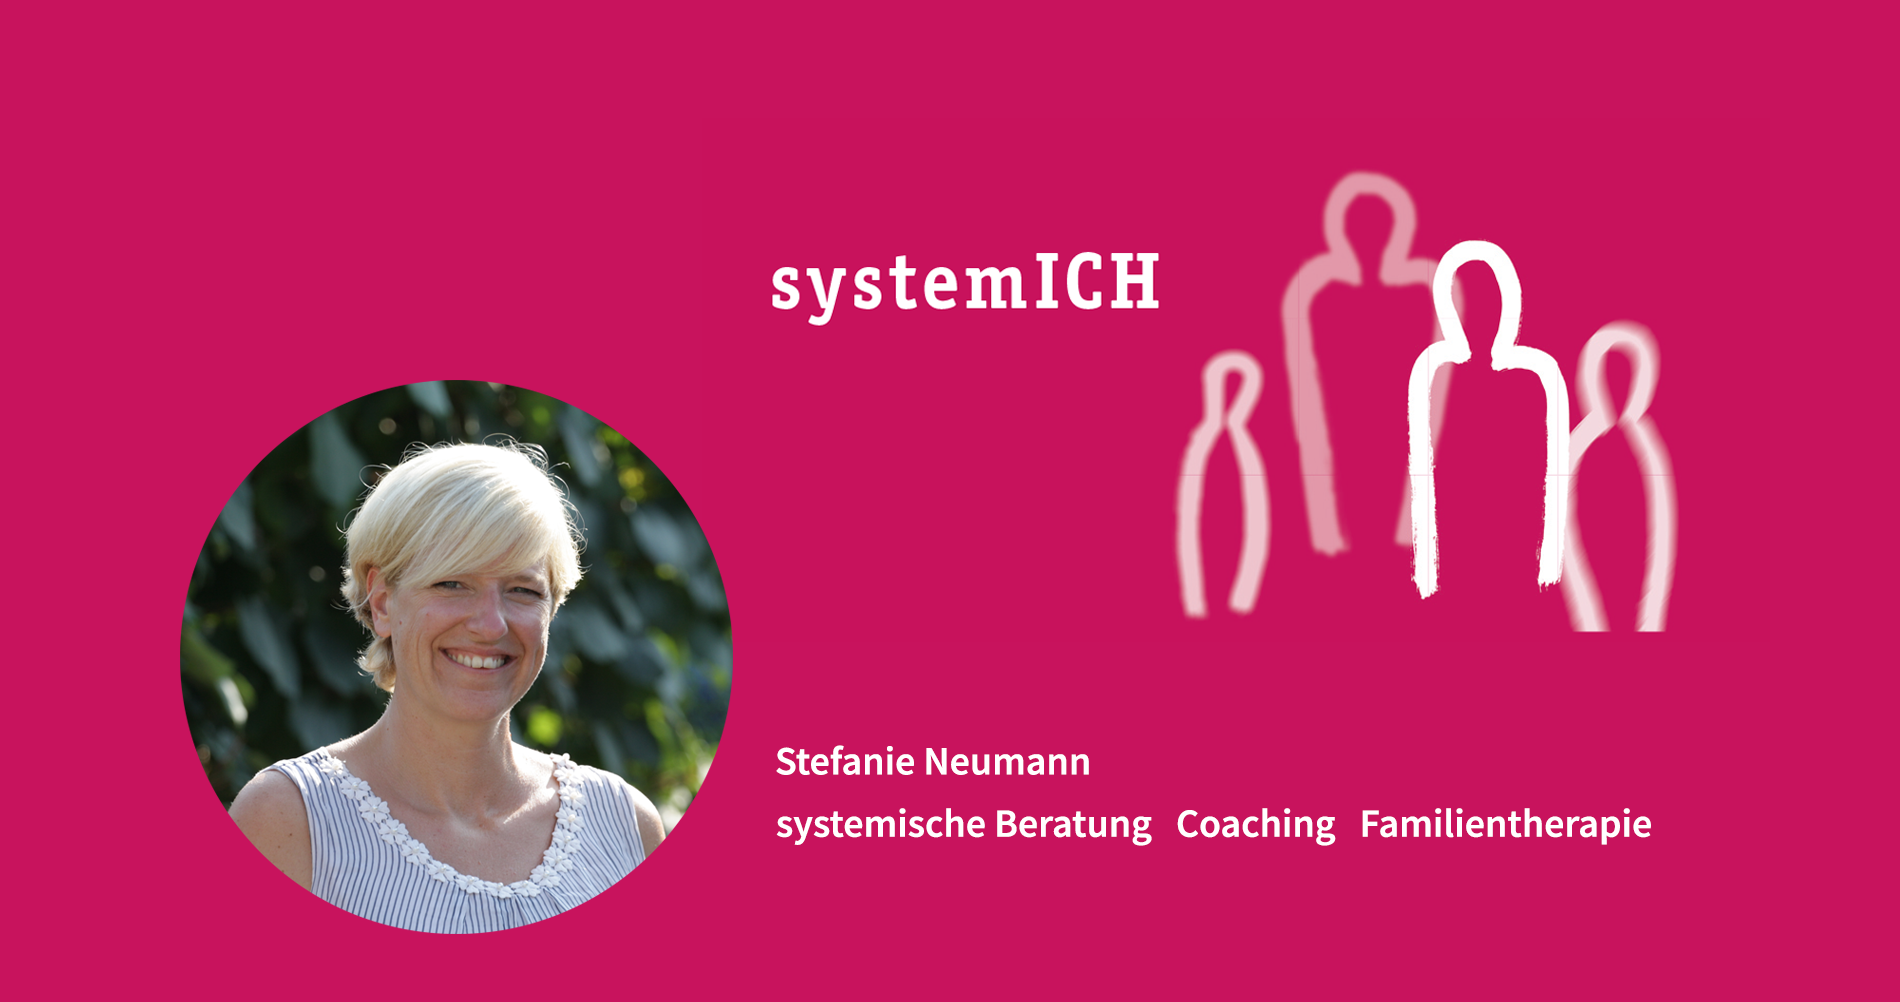 Systemich